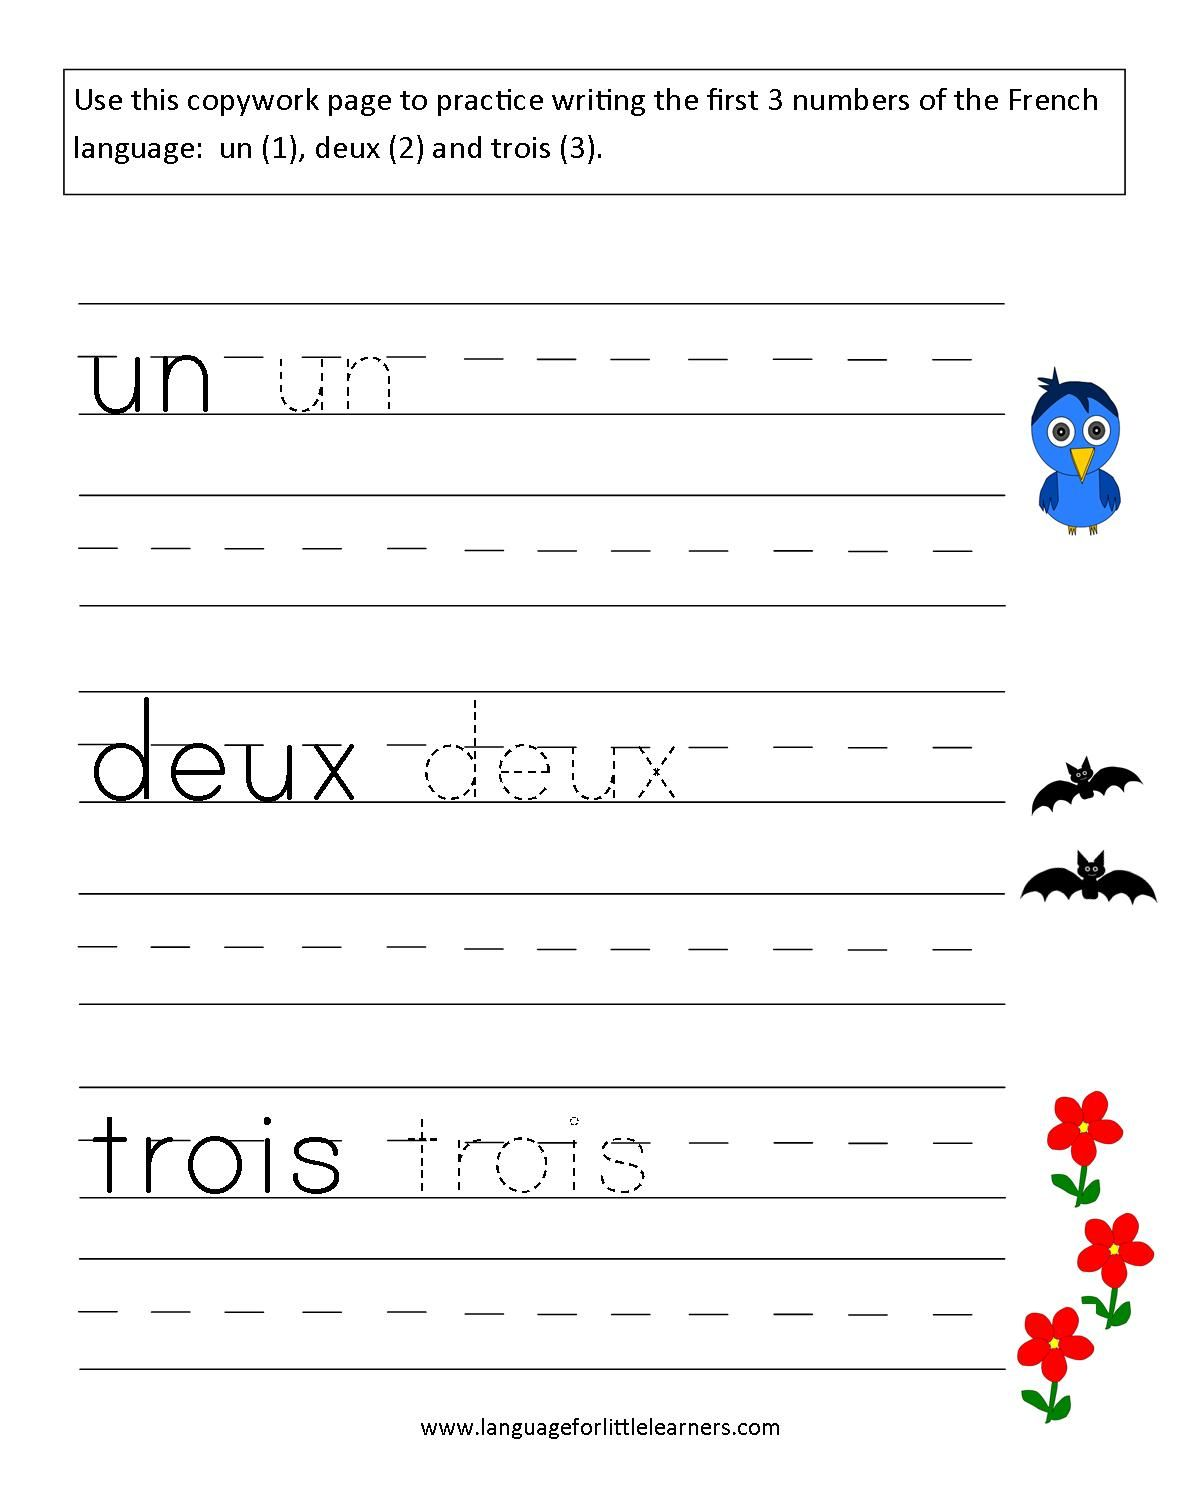 Worksheet Use Of This And That Worksheet For Kids french worksheets for kids spring printout its aimed towards teaching preschool children but you can change the activities to use them older